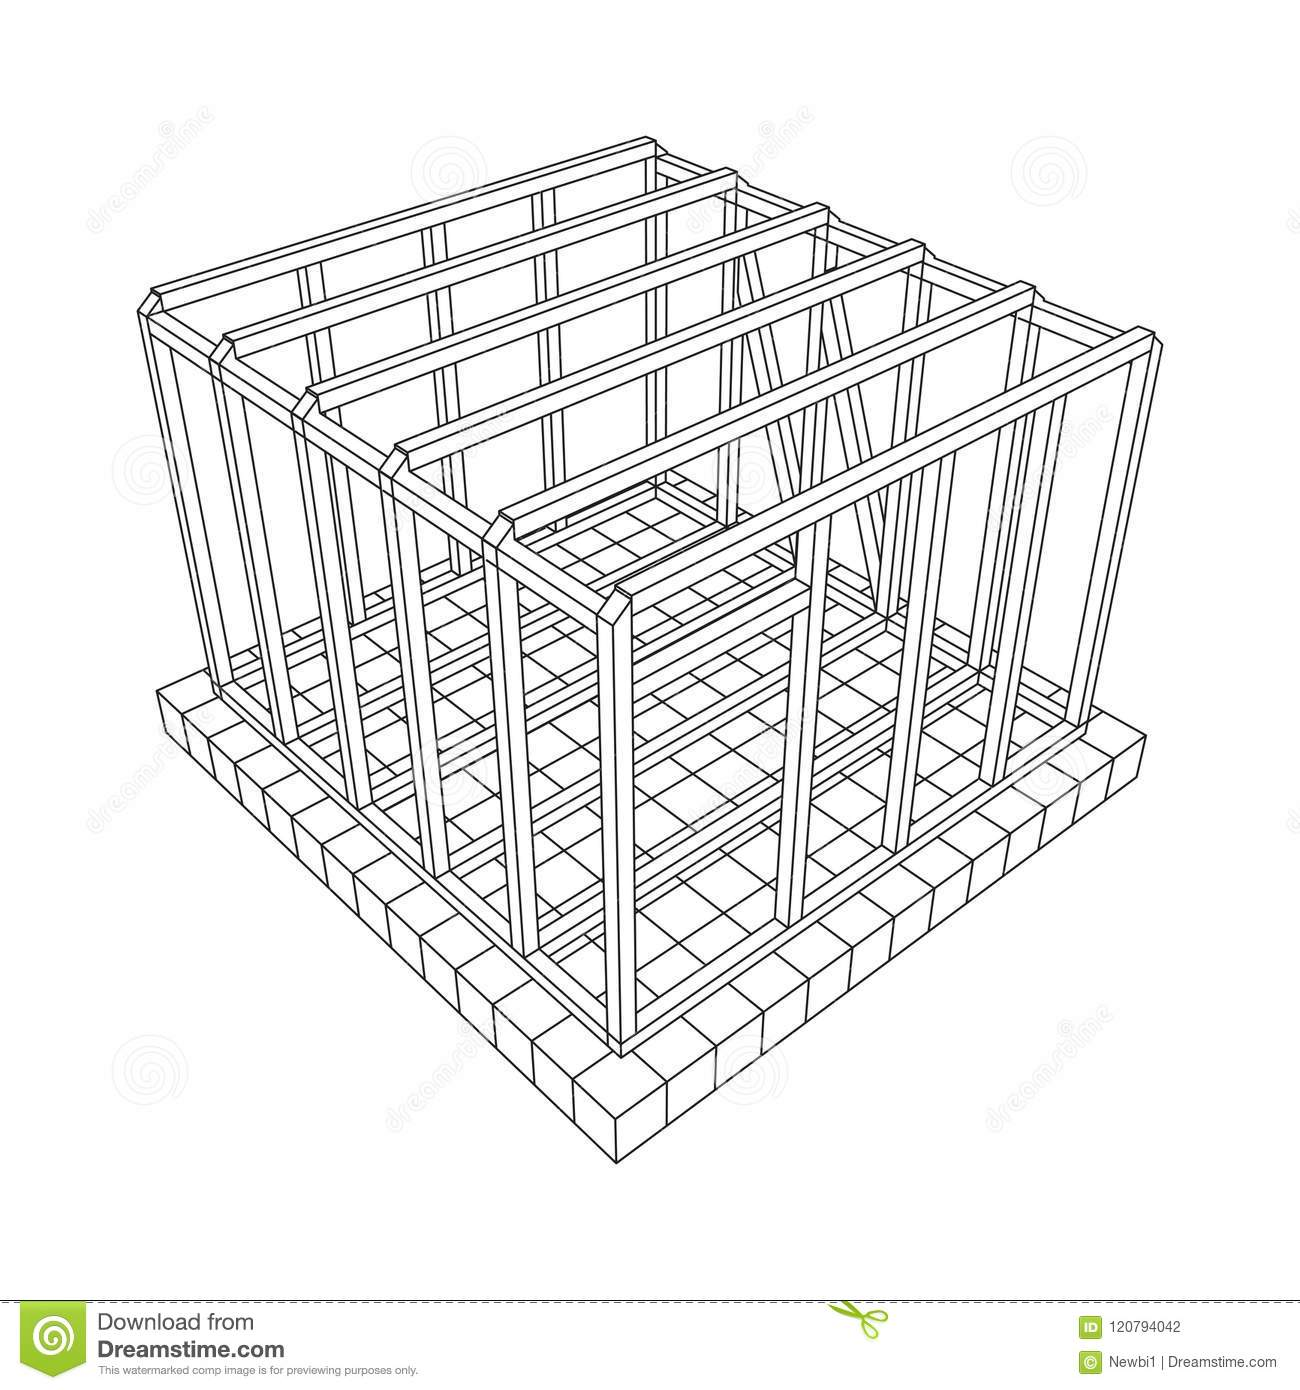 Wireframe framing house stock vector. Illustration of building ...